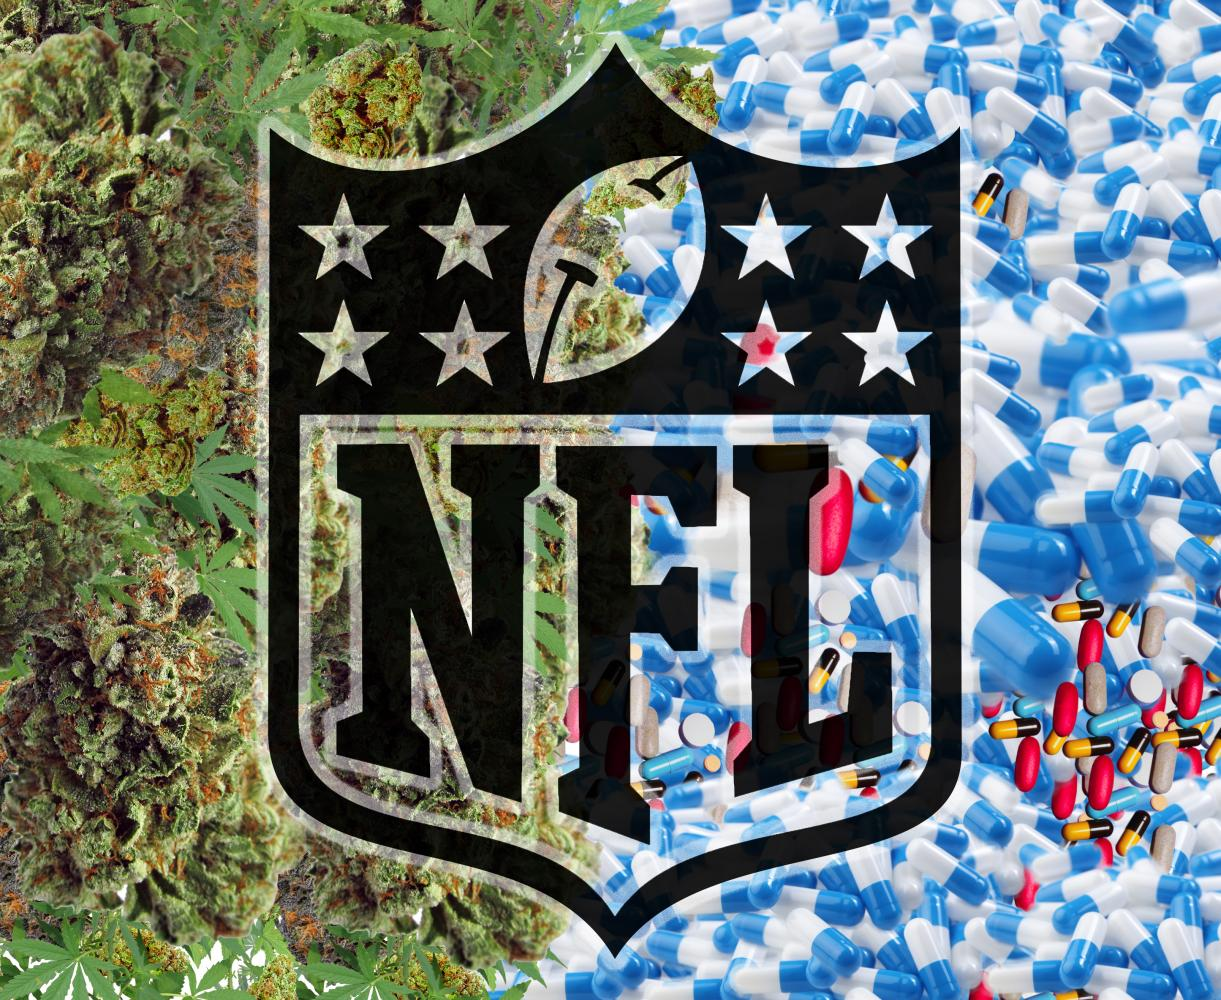 There has been conflict betweeen NFL Commissioner Roger Goodell and the NFL Player's Association about Marijuana use.